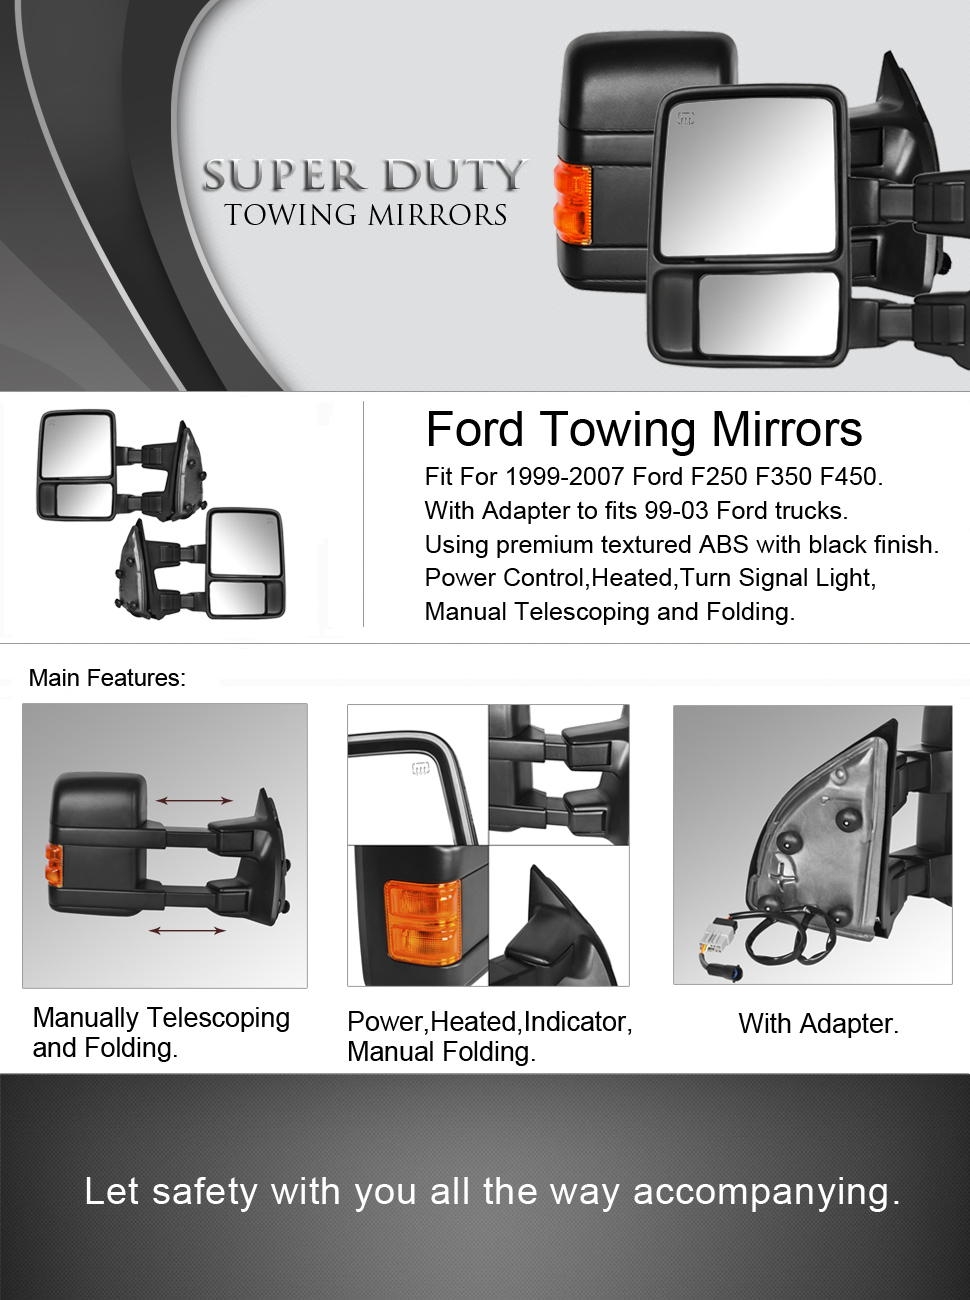 Dedc ford towing mirrors f250 ford tow mirrors f350 f450 pair for 1999 2007 side mirror power heated with signal light upgrade to 08 superduty retrofit